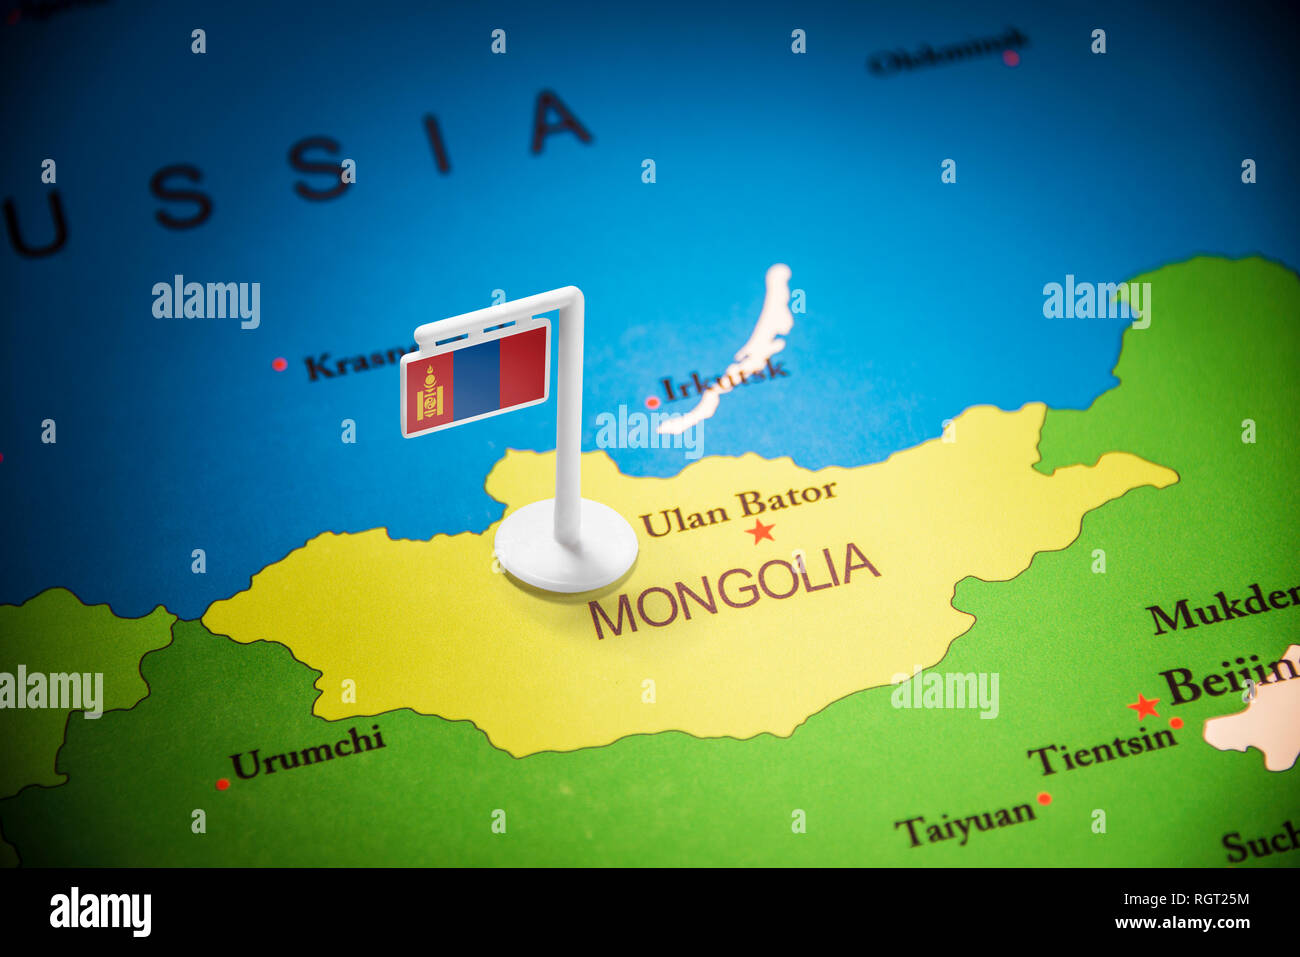 Mongolia marked with a flag on the map - Stock Image